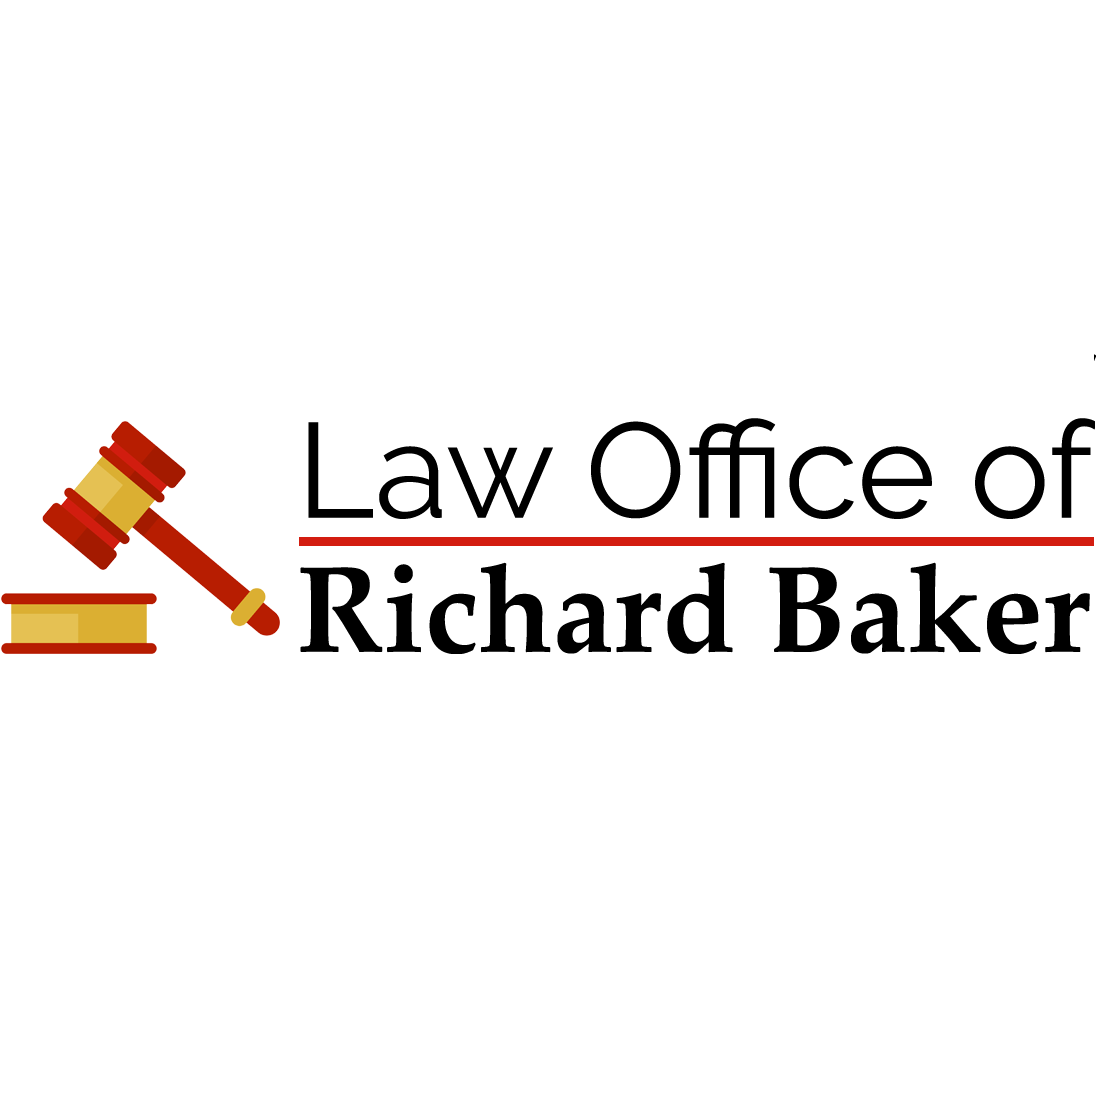 Law Office of Richard Baker